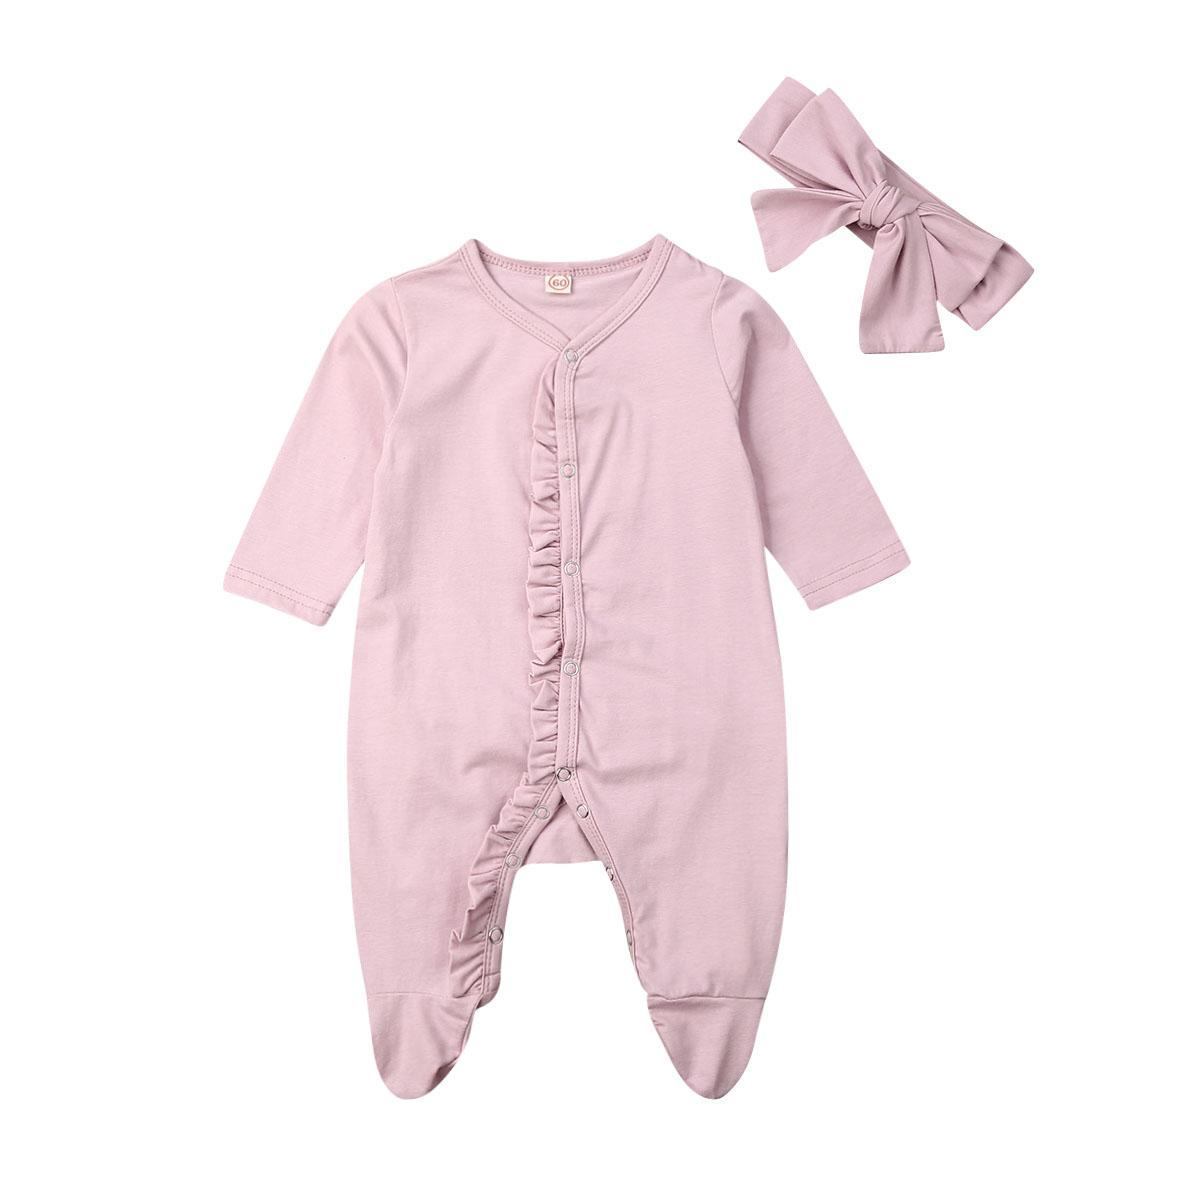 Newborn Baby Boy Girl Autumn Clothes Footies jumpsuit +Headband ruffled solid cotton comfortable baby boy girl clothes